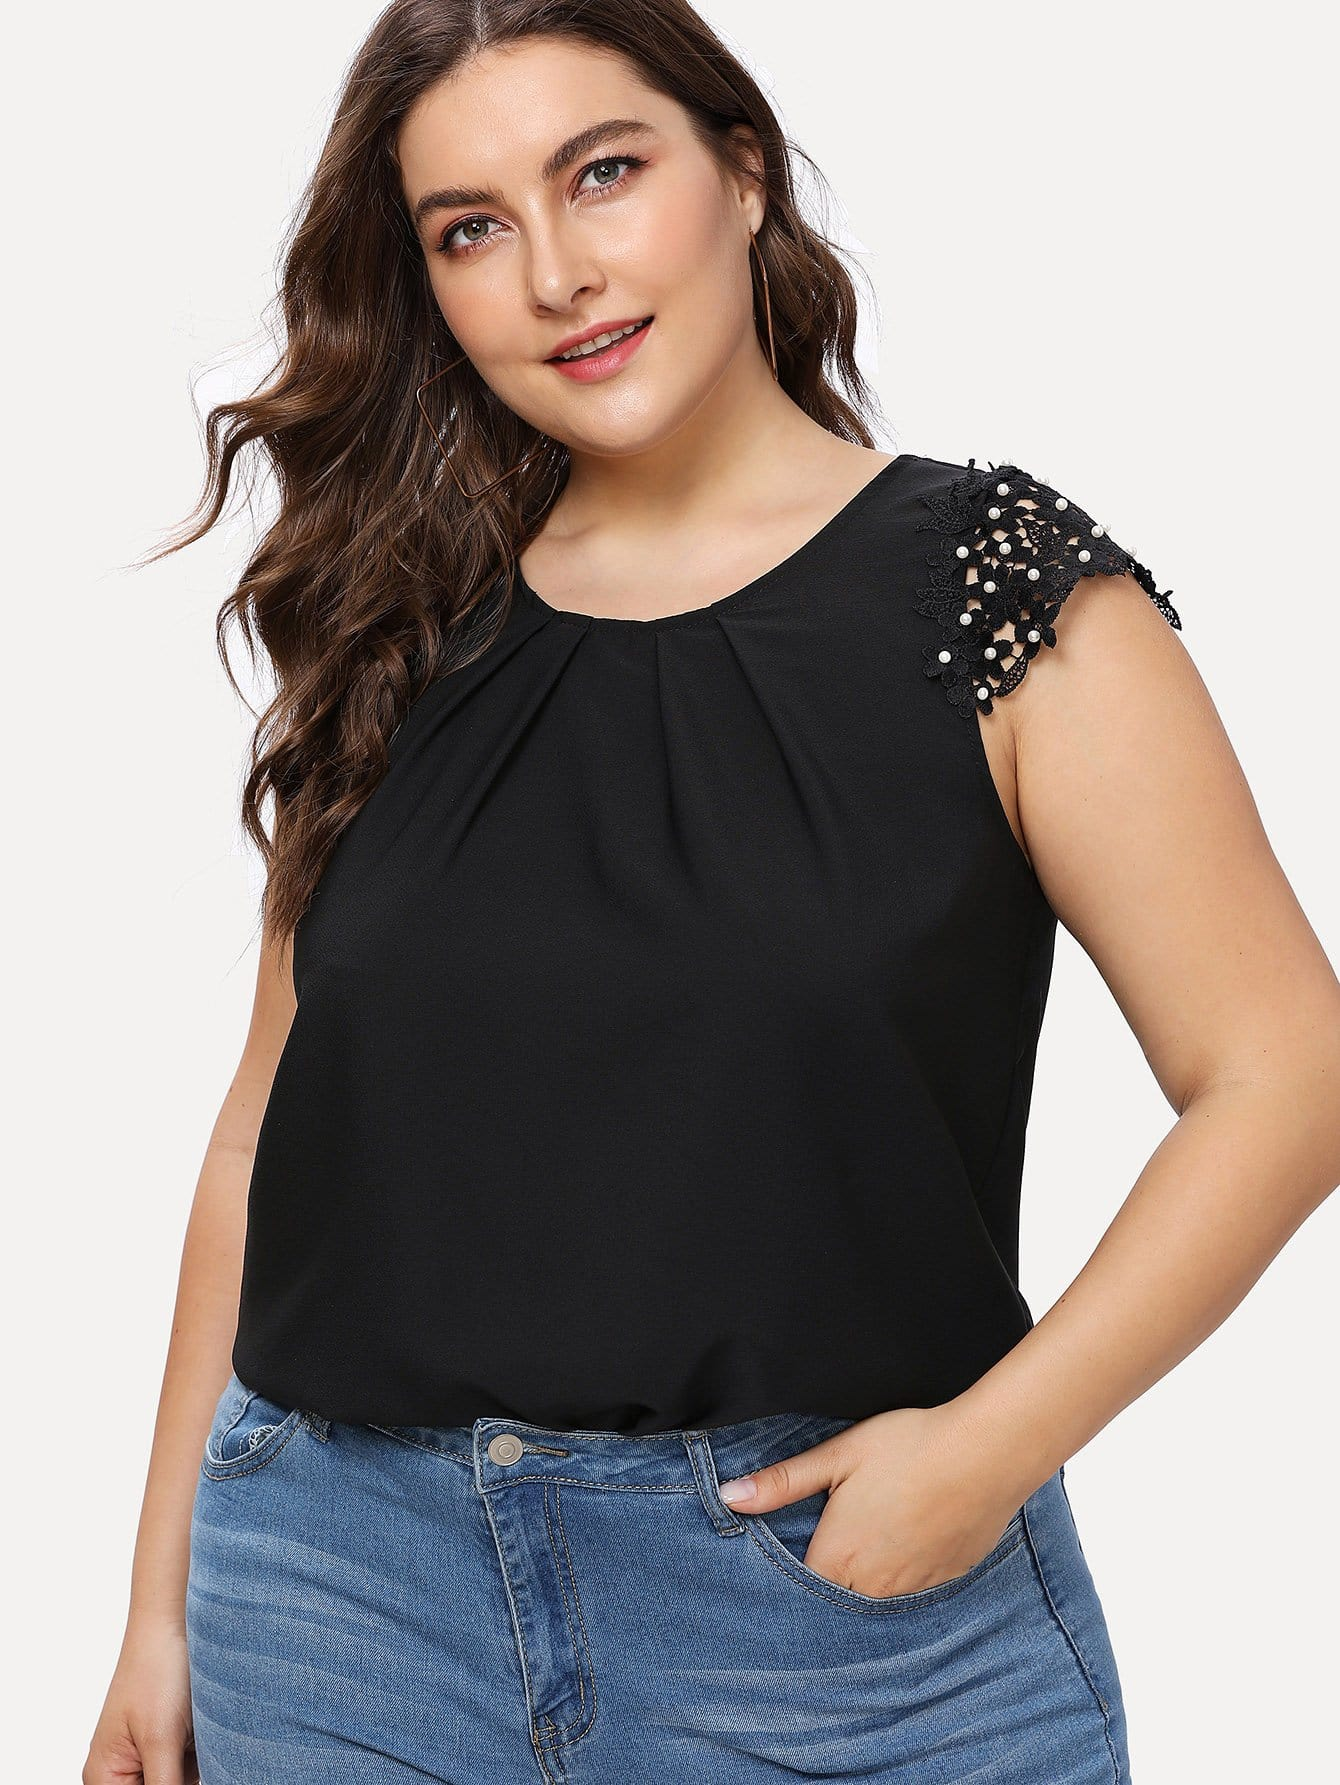 Lace Panel Pearls Detail Top lace panel yoke top